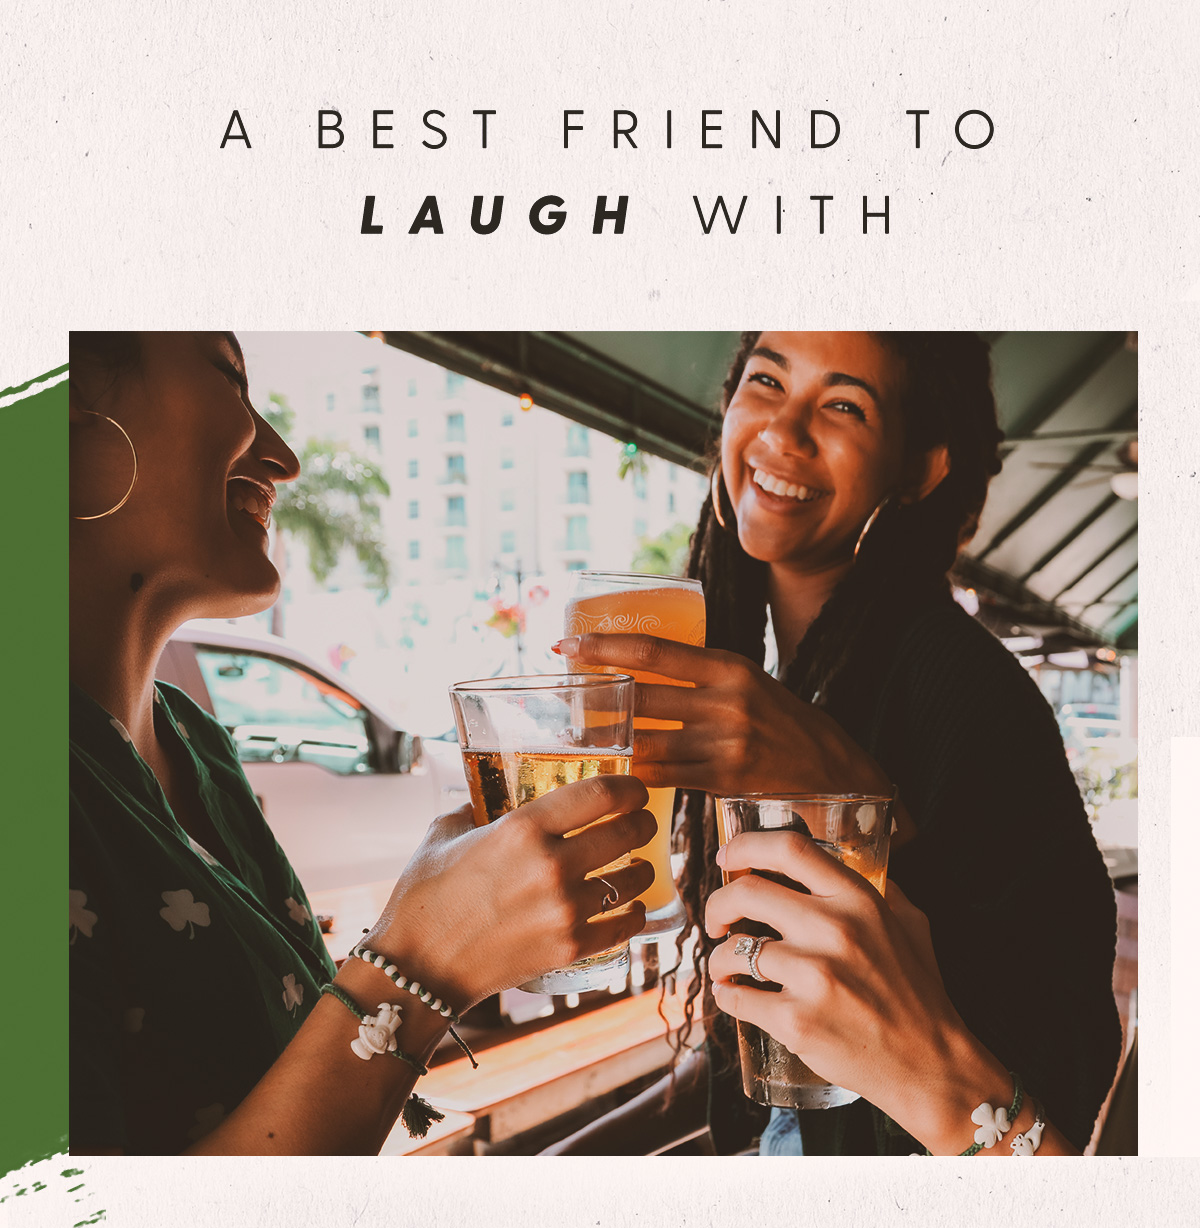 A best friend to laugh with